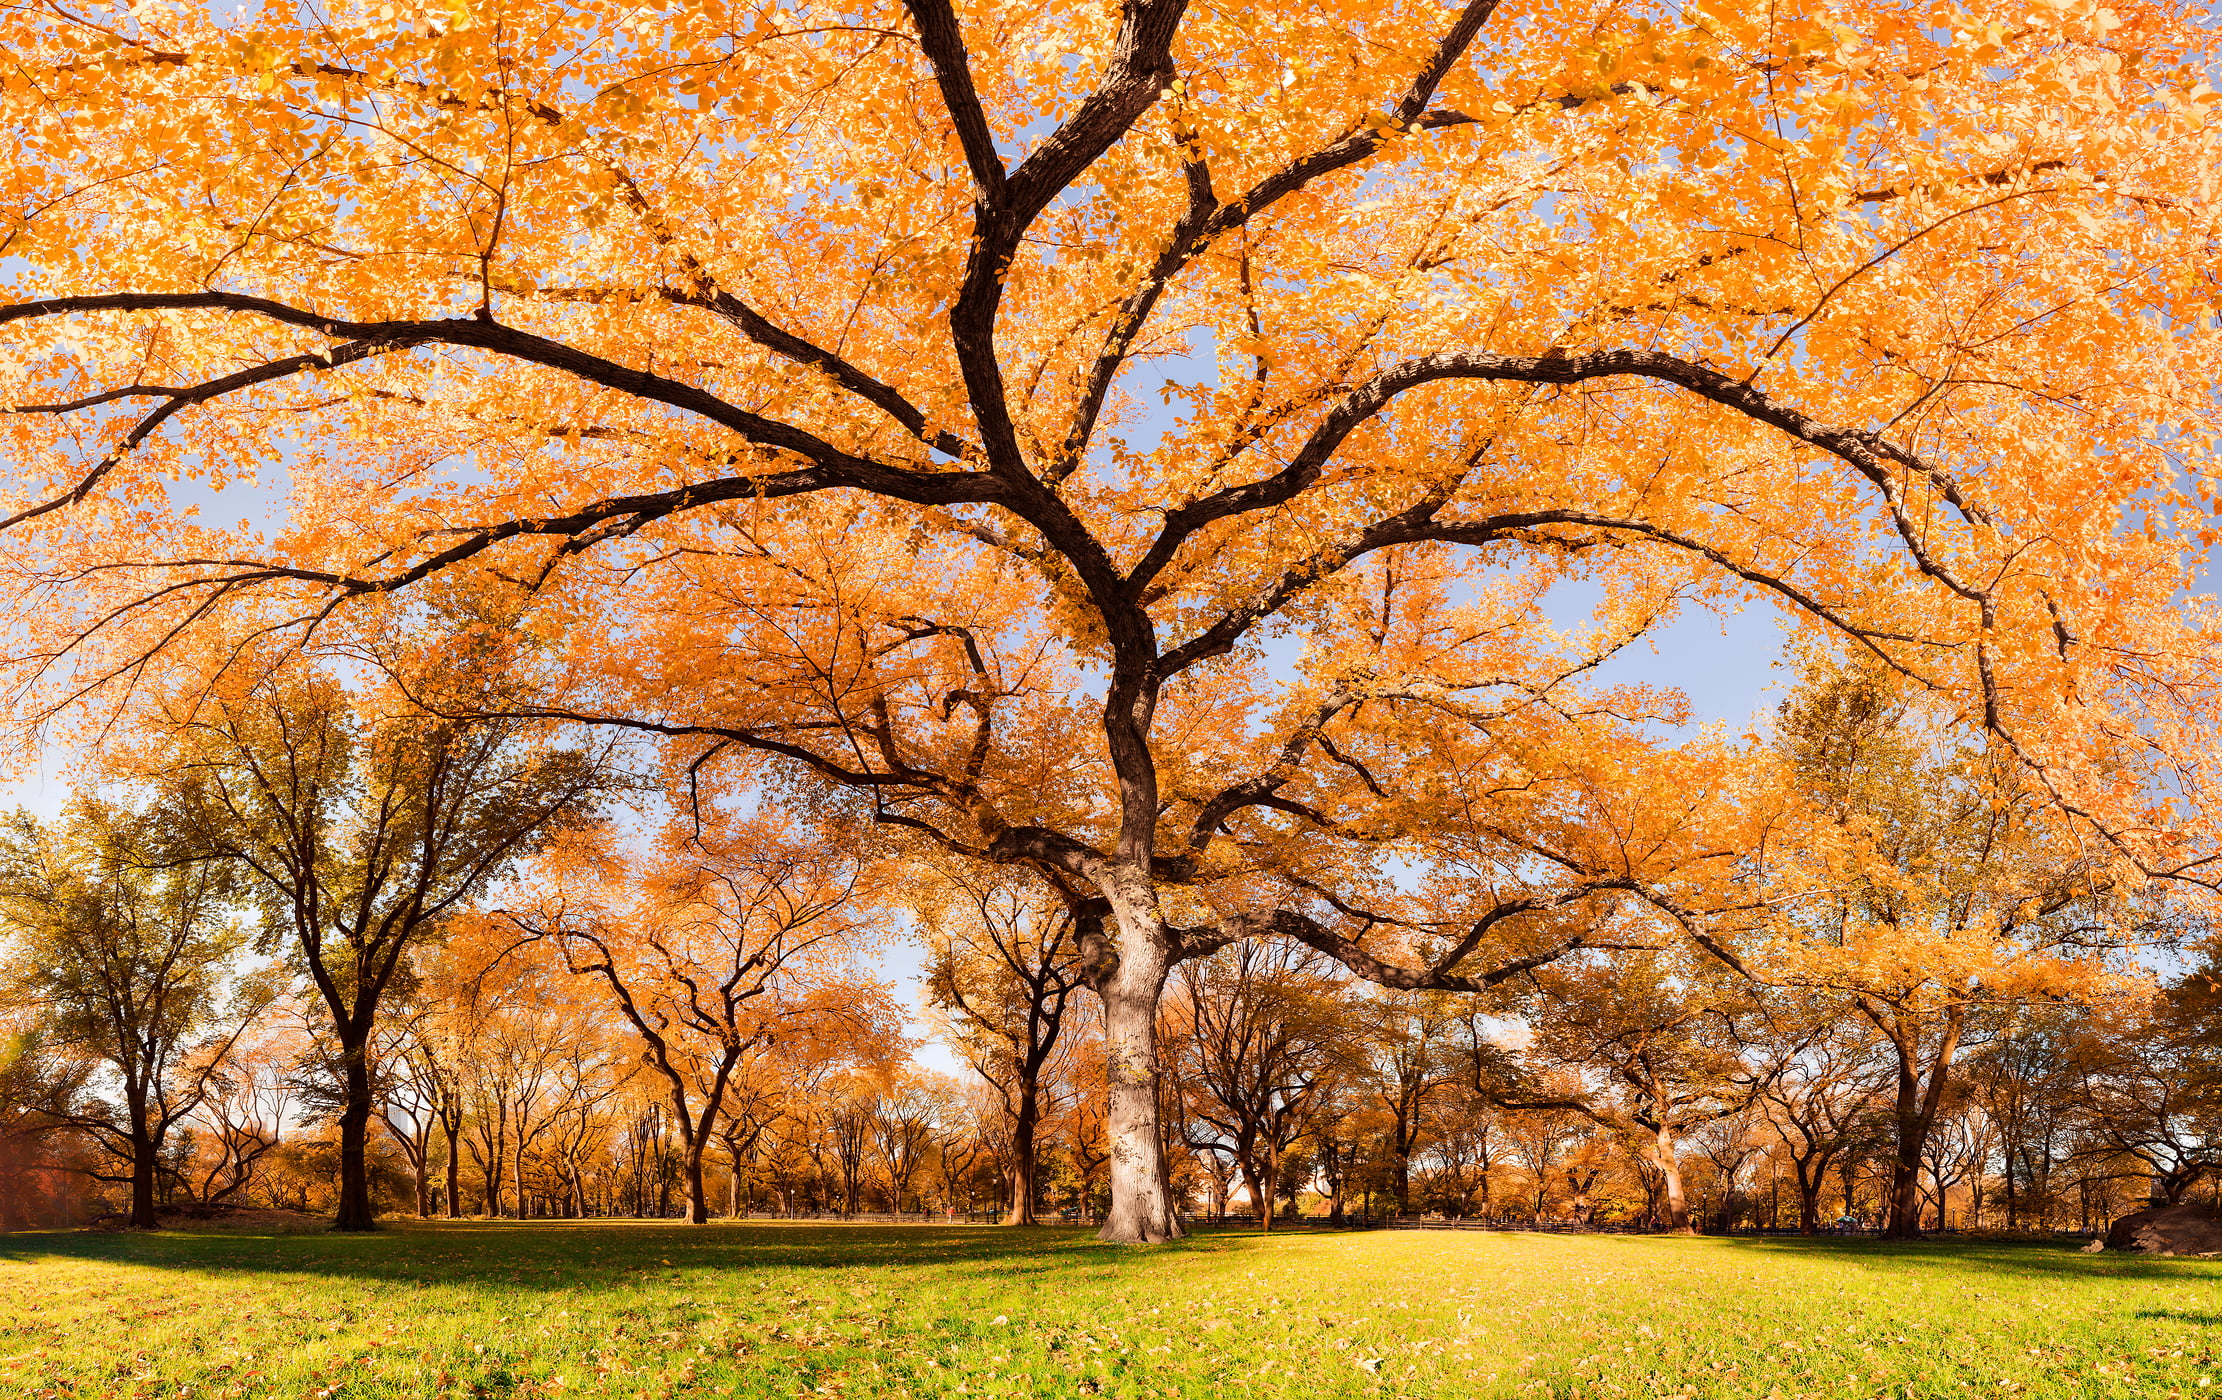 2,139 megapixels! A very high resolution, HD large-format VAST photo print of autumn foliage on an American Elm Tree on The Mall in Central Park, NYC; created by Dan Piech